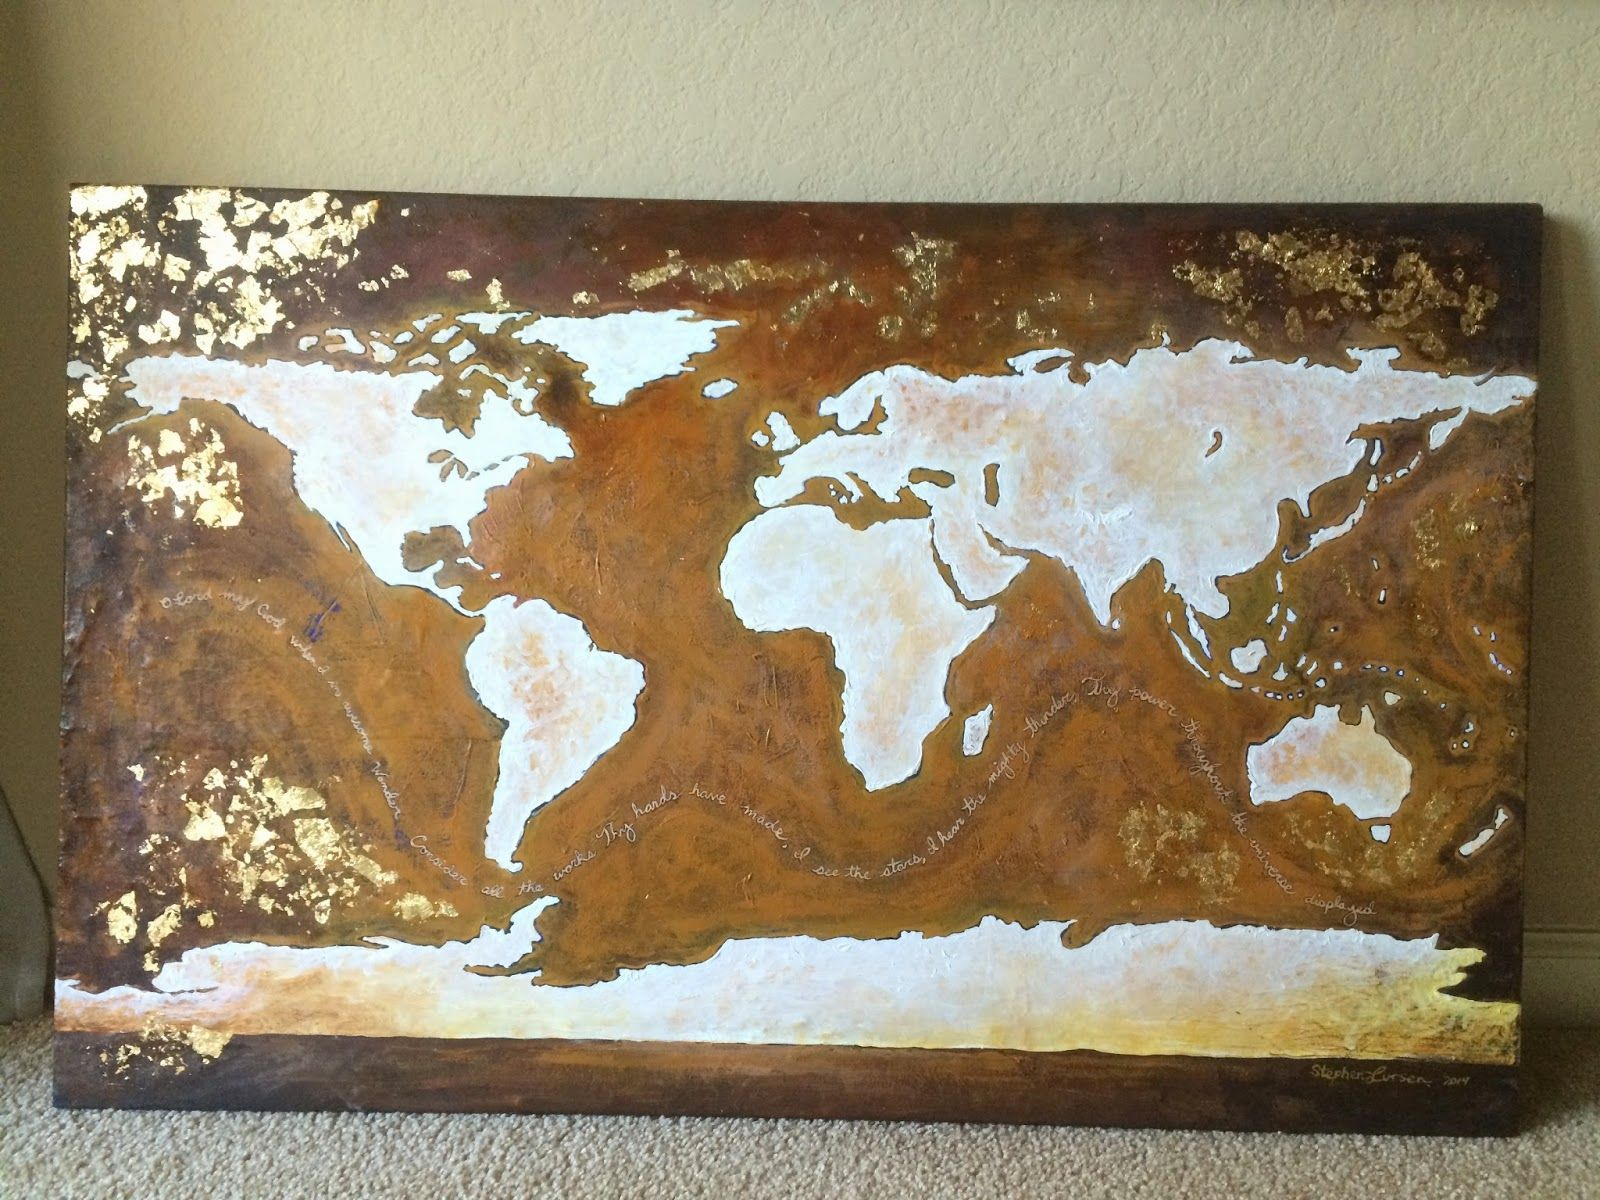 24 x 48 acrylic and gold leaf world map on canvas 2014 stephen 24 x 48 acrylic and gold leaf world map on canvas 2014 gumiabroncs Gallery